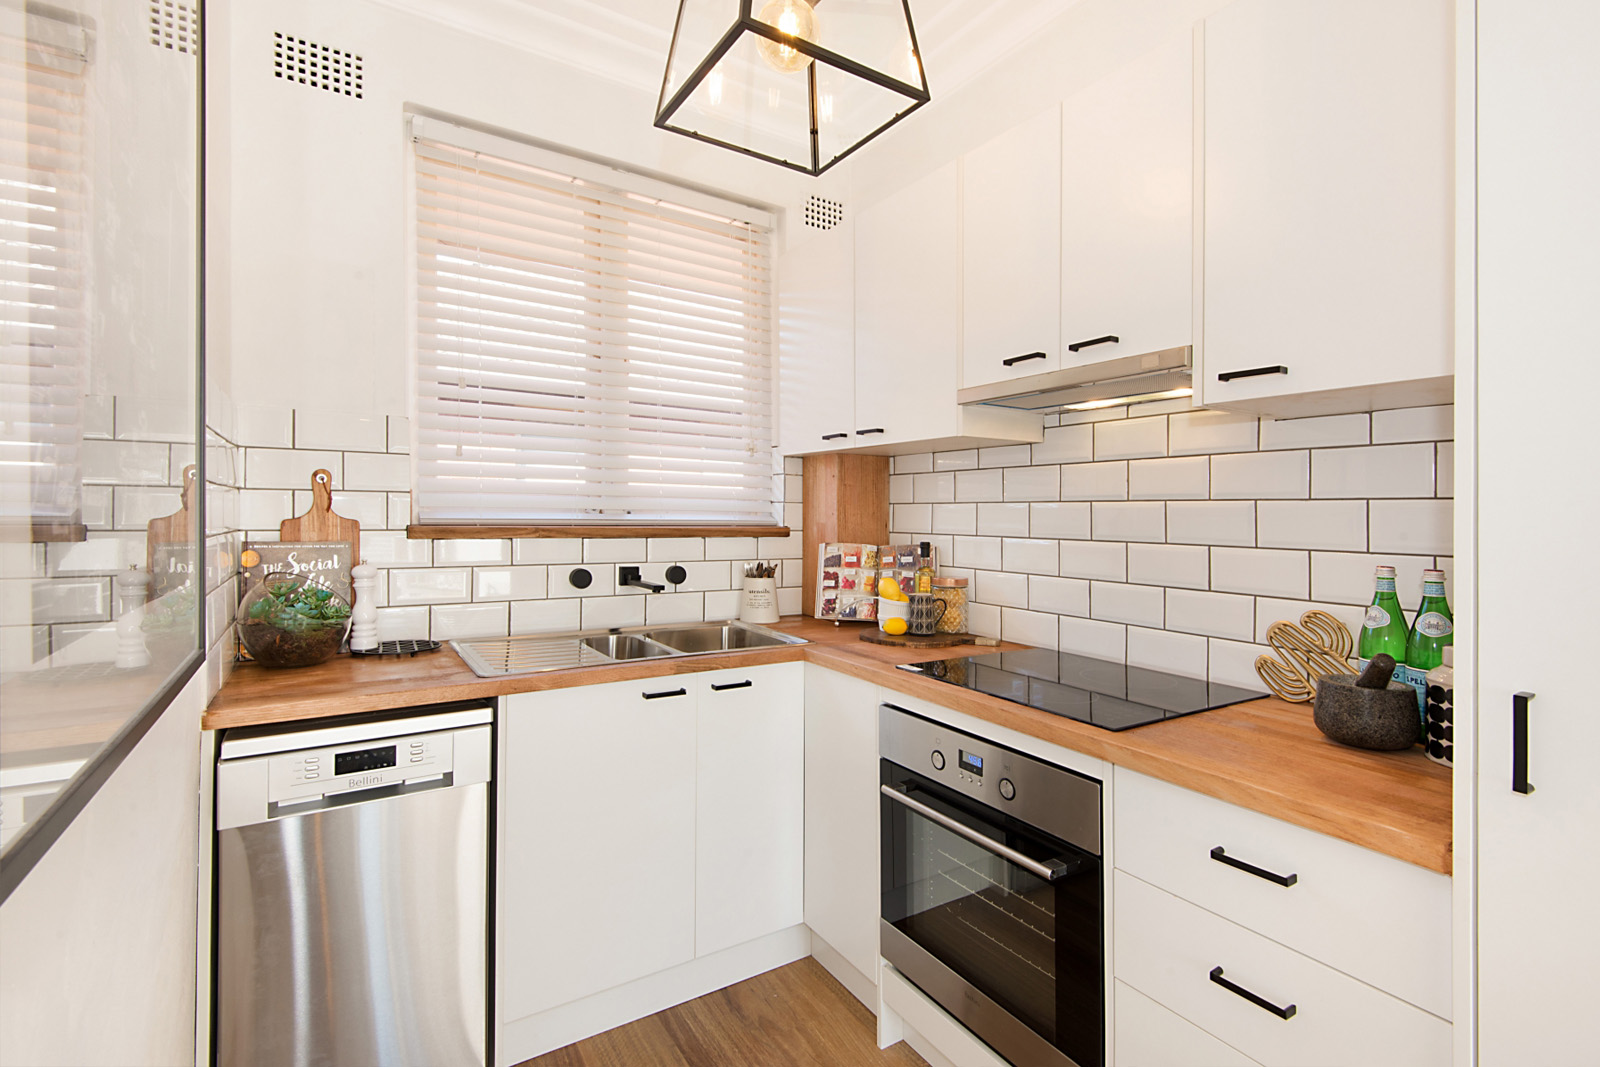 Cherie-Barber_Renovating-For-Profit_Apartment-Transformation_Kitchen-After